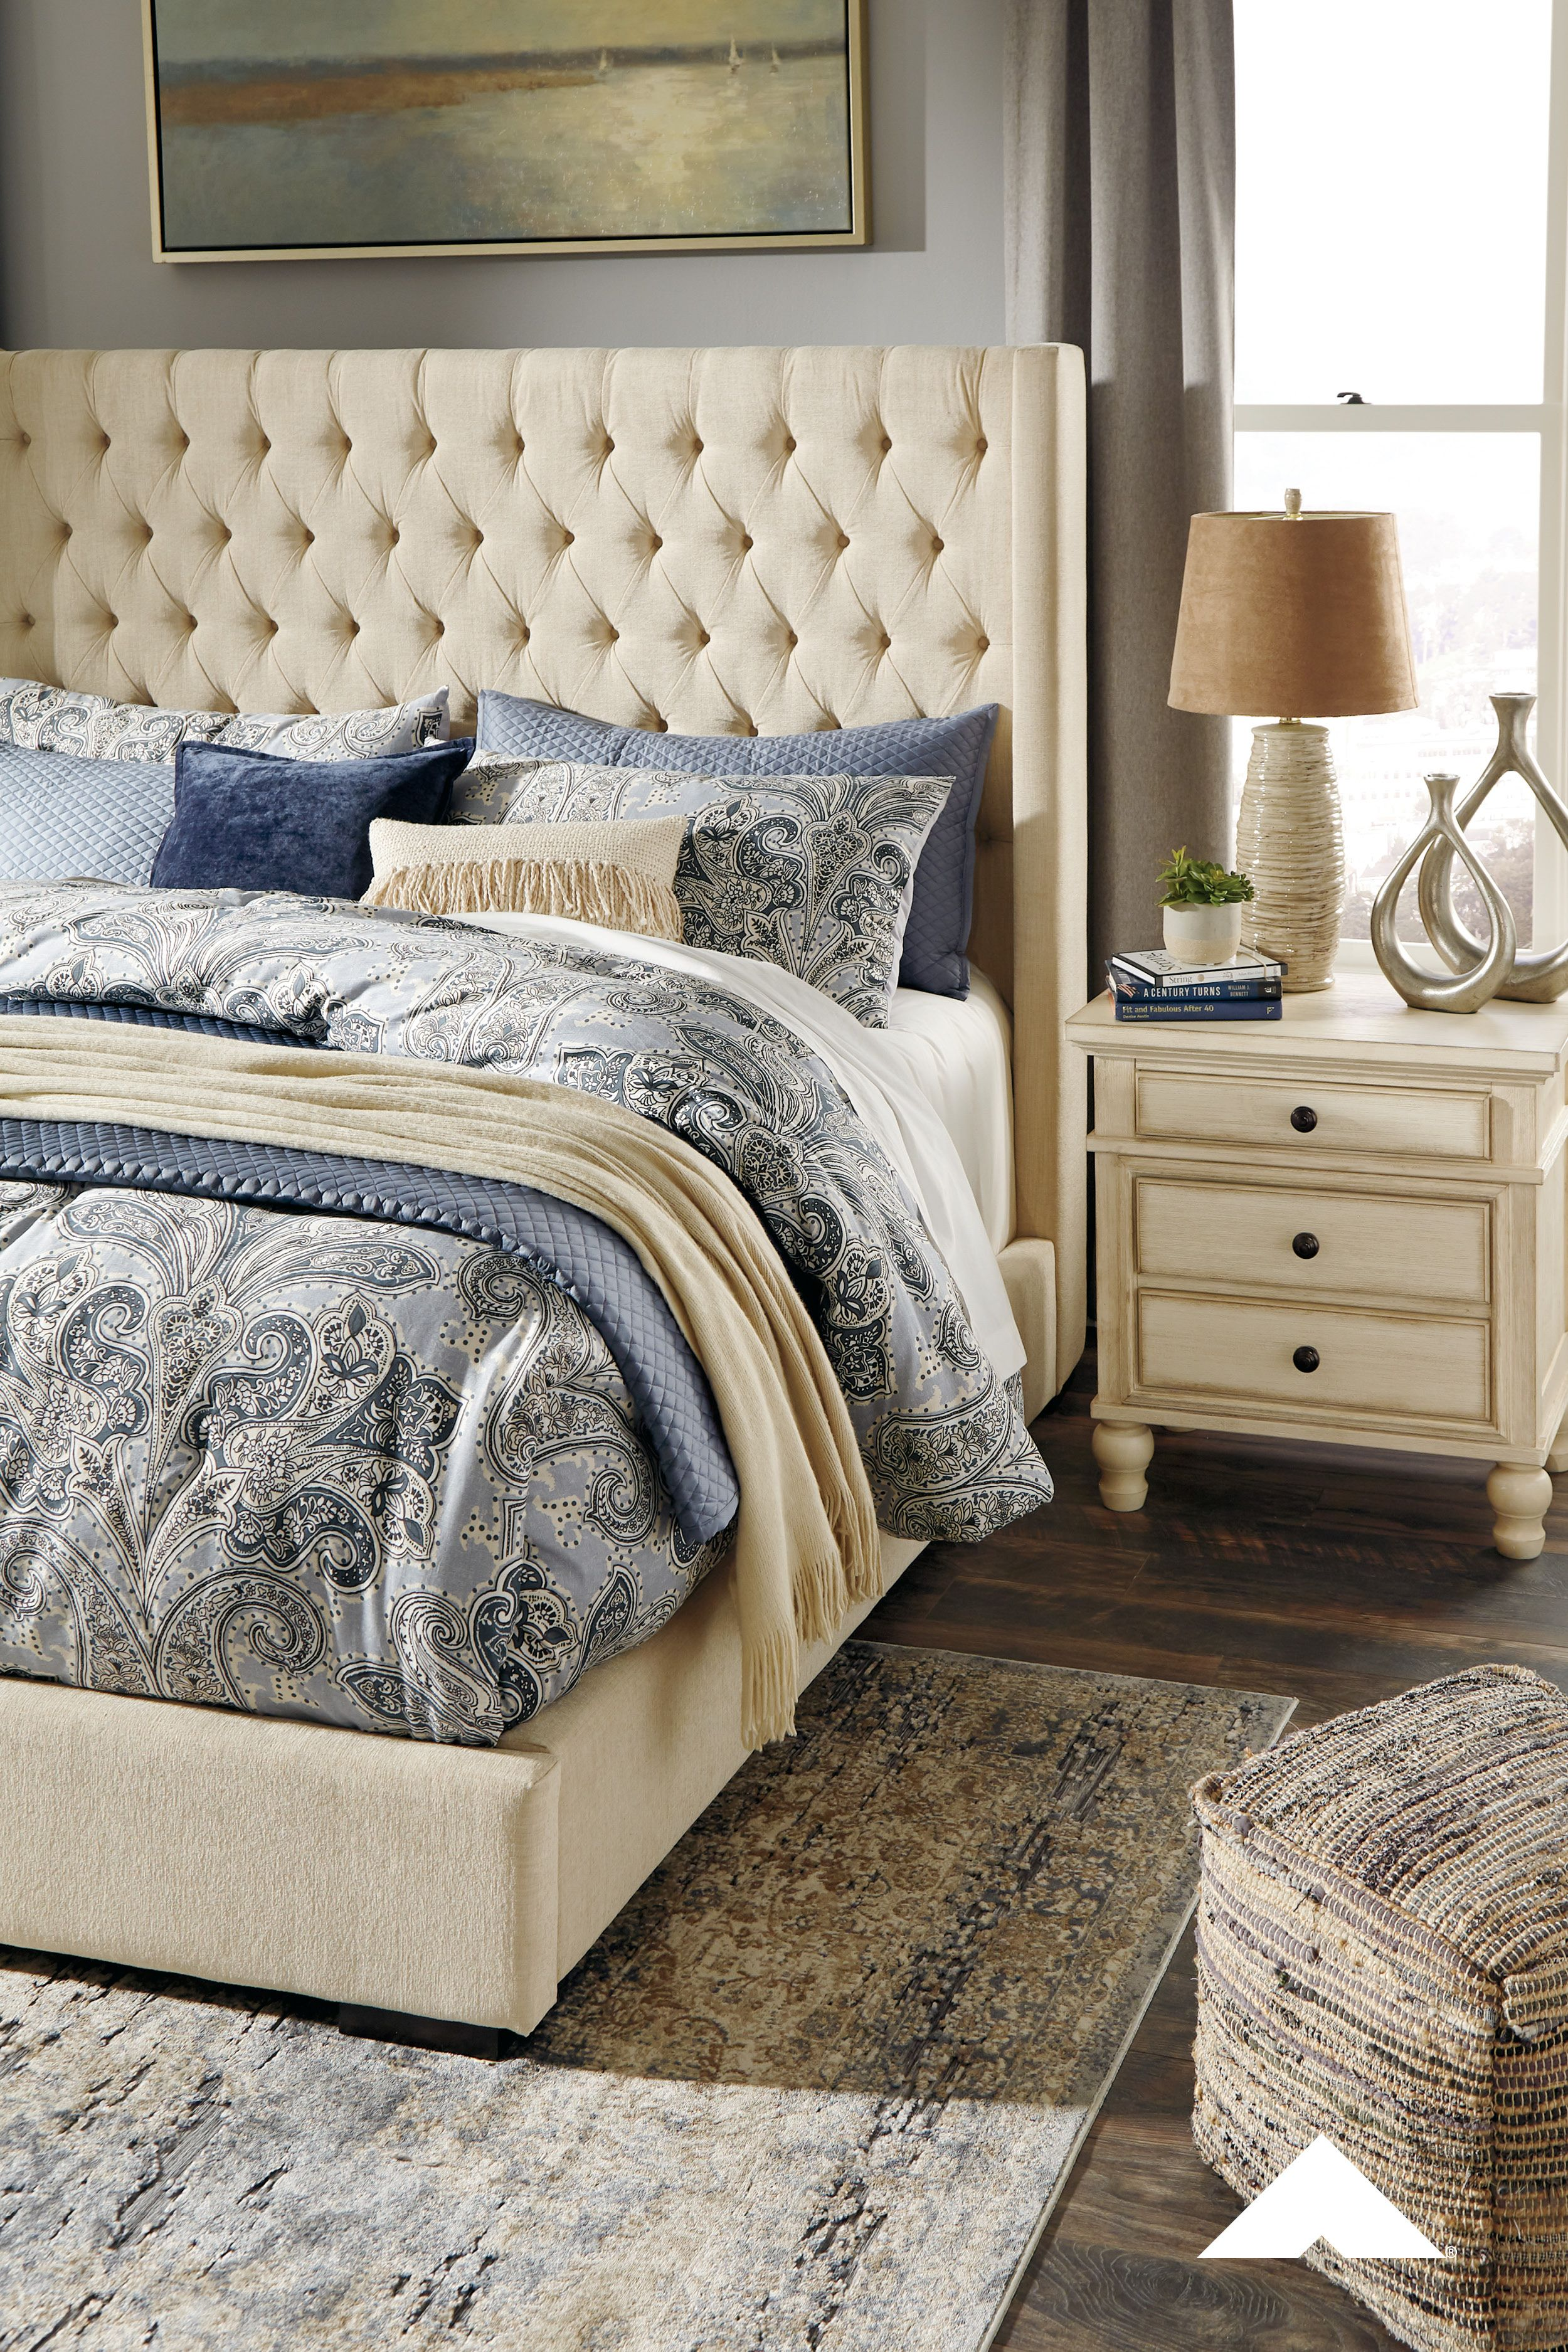 Norrister Beige Headboard Mansion Wing Bed With Luxurious